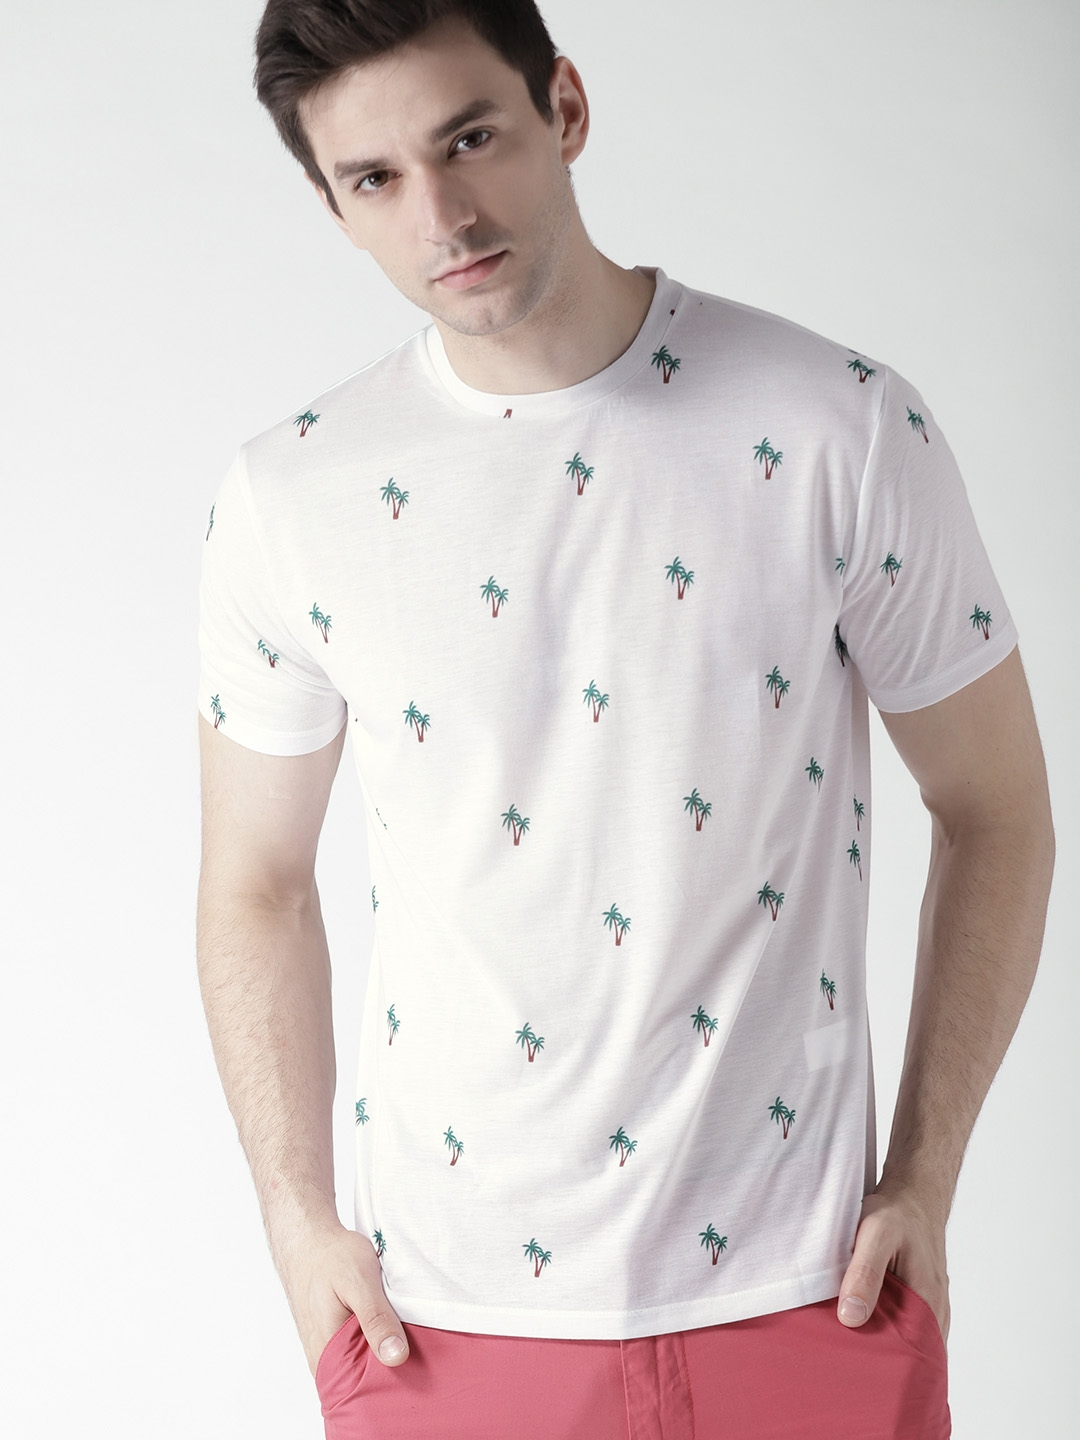 aacf1e4e5 Buy FOREVER 21 Men White Printed Round Neck T Shirt - Tshirts for ...